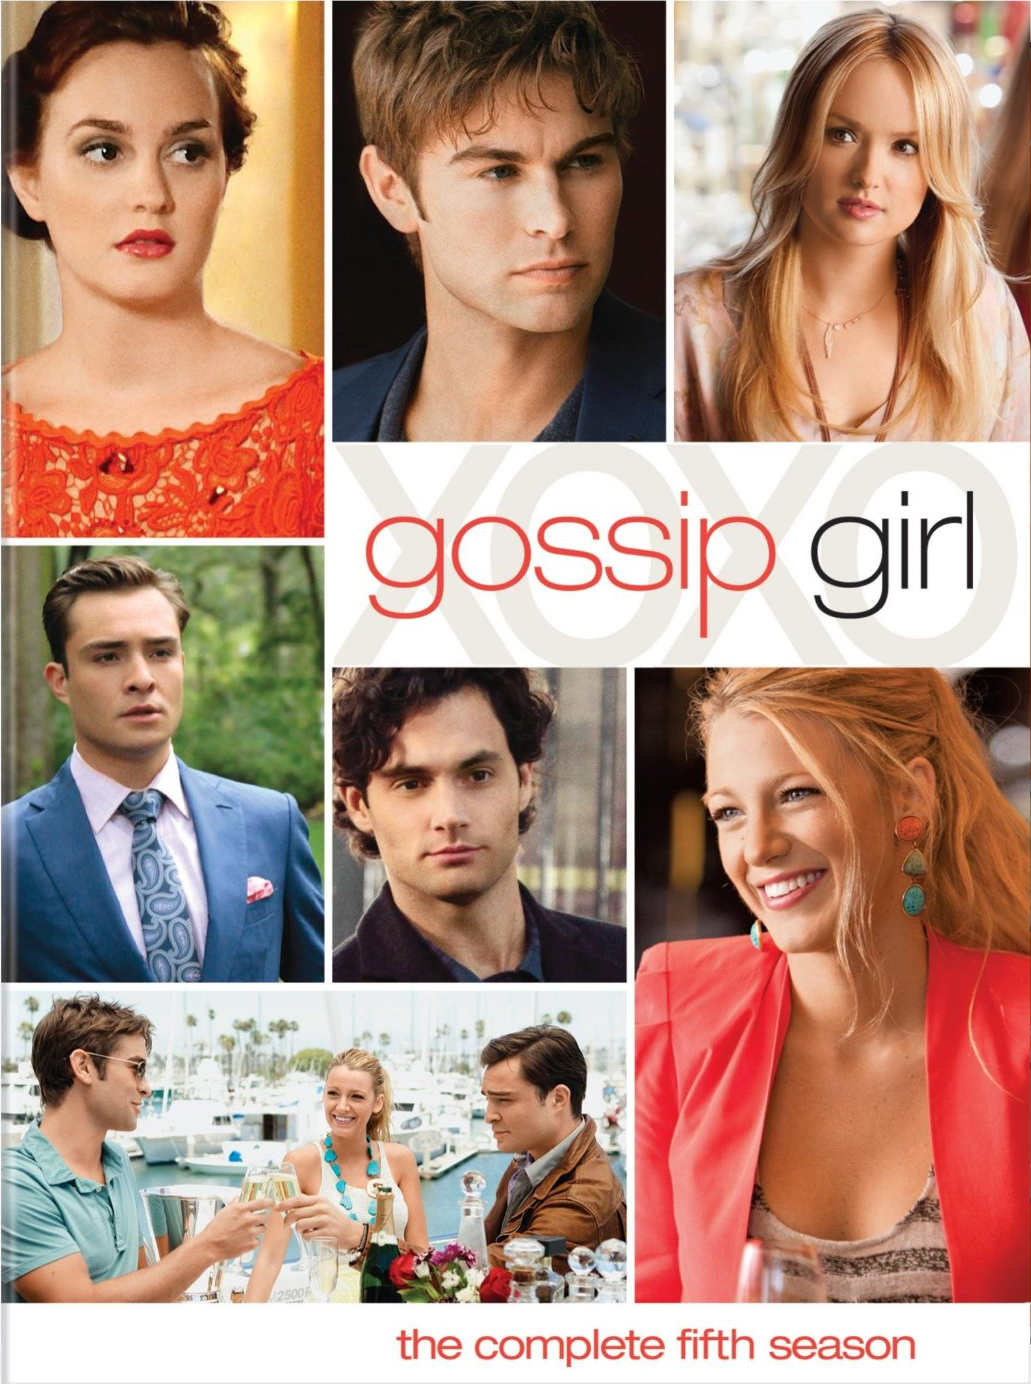 Who is rufus dating in gossip girl season 1